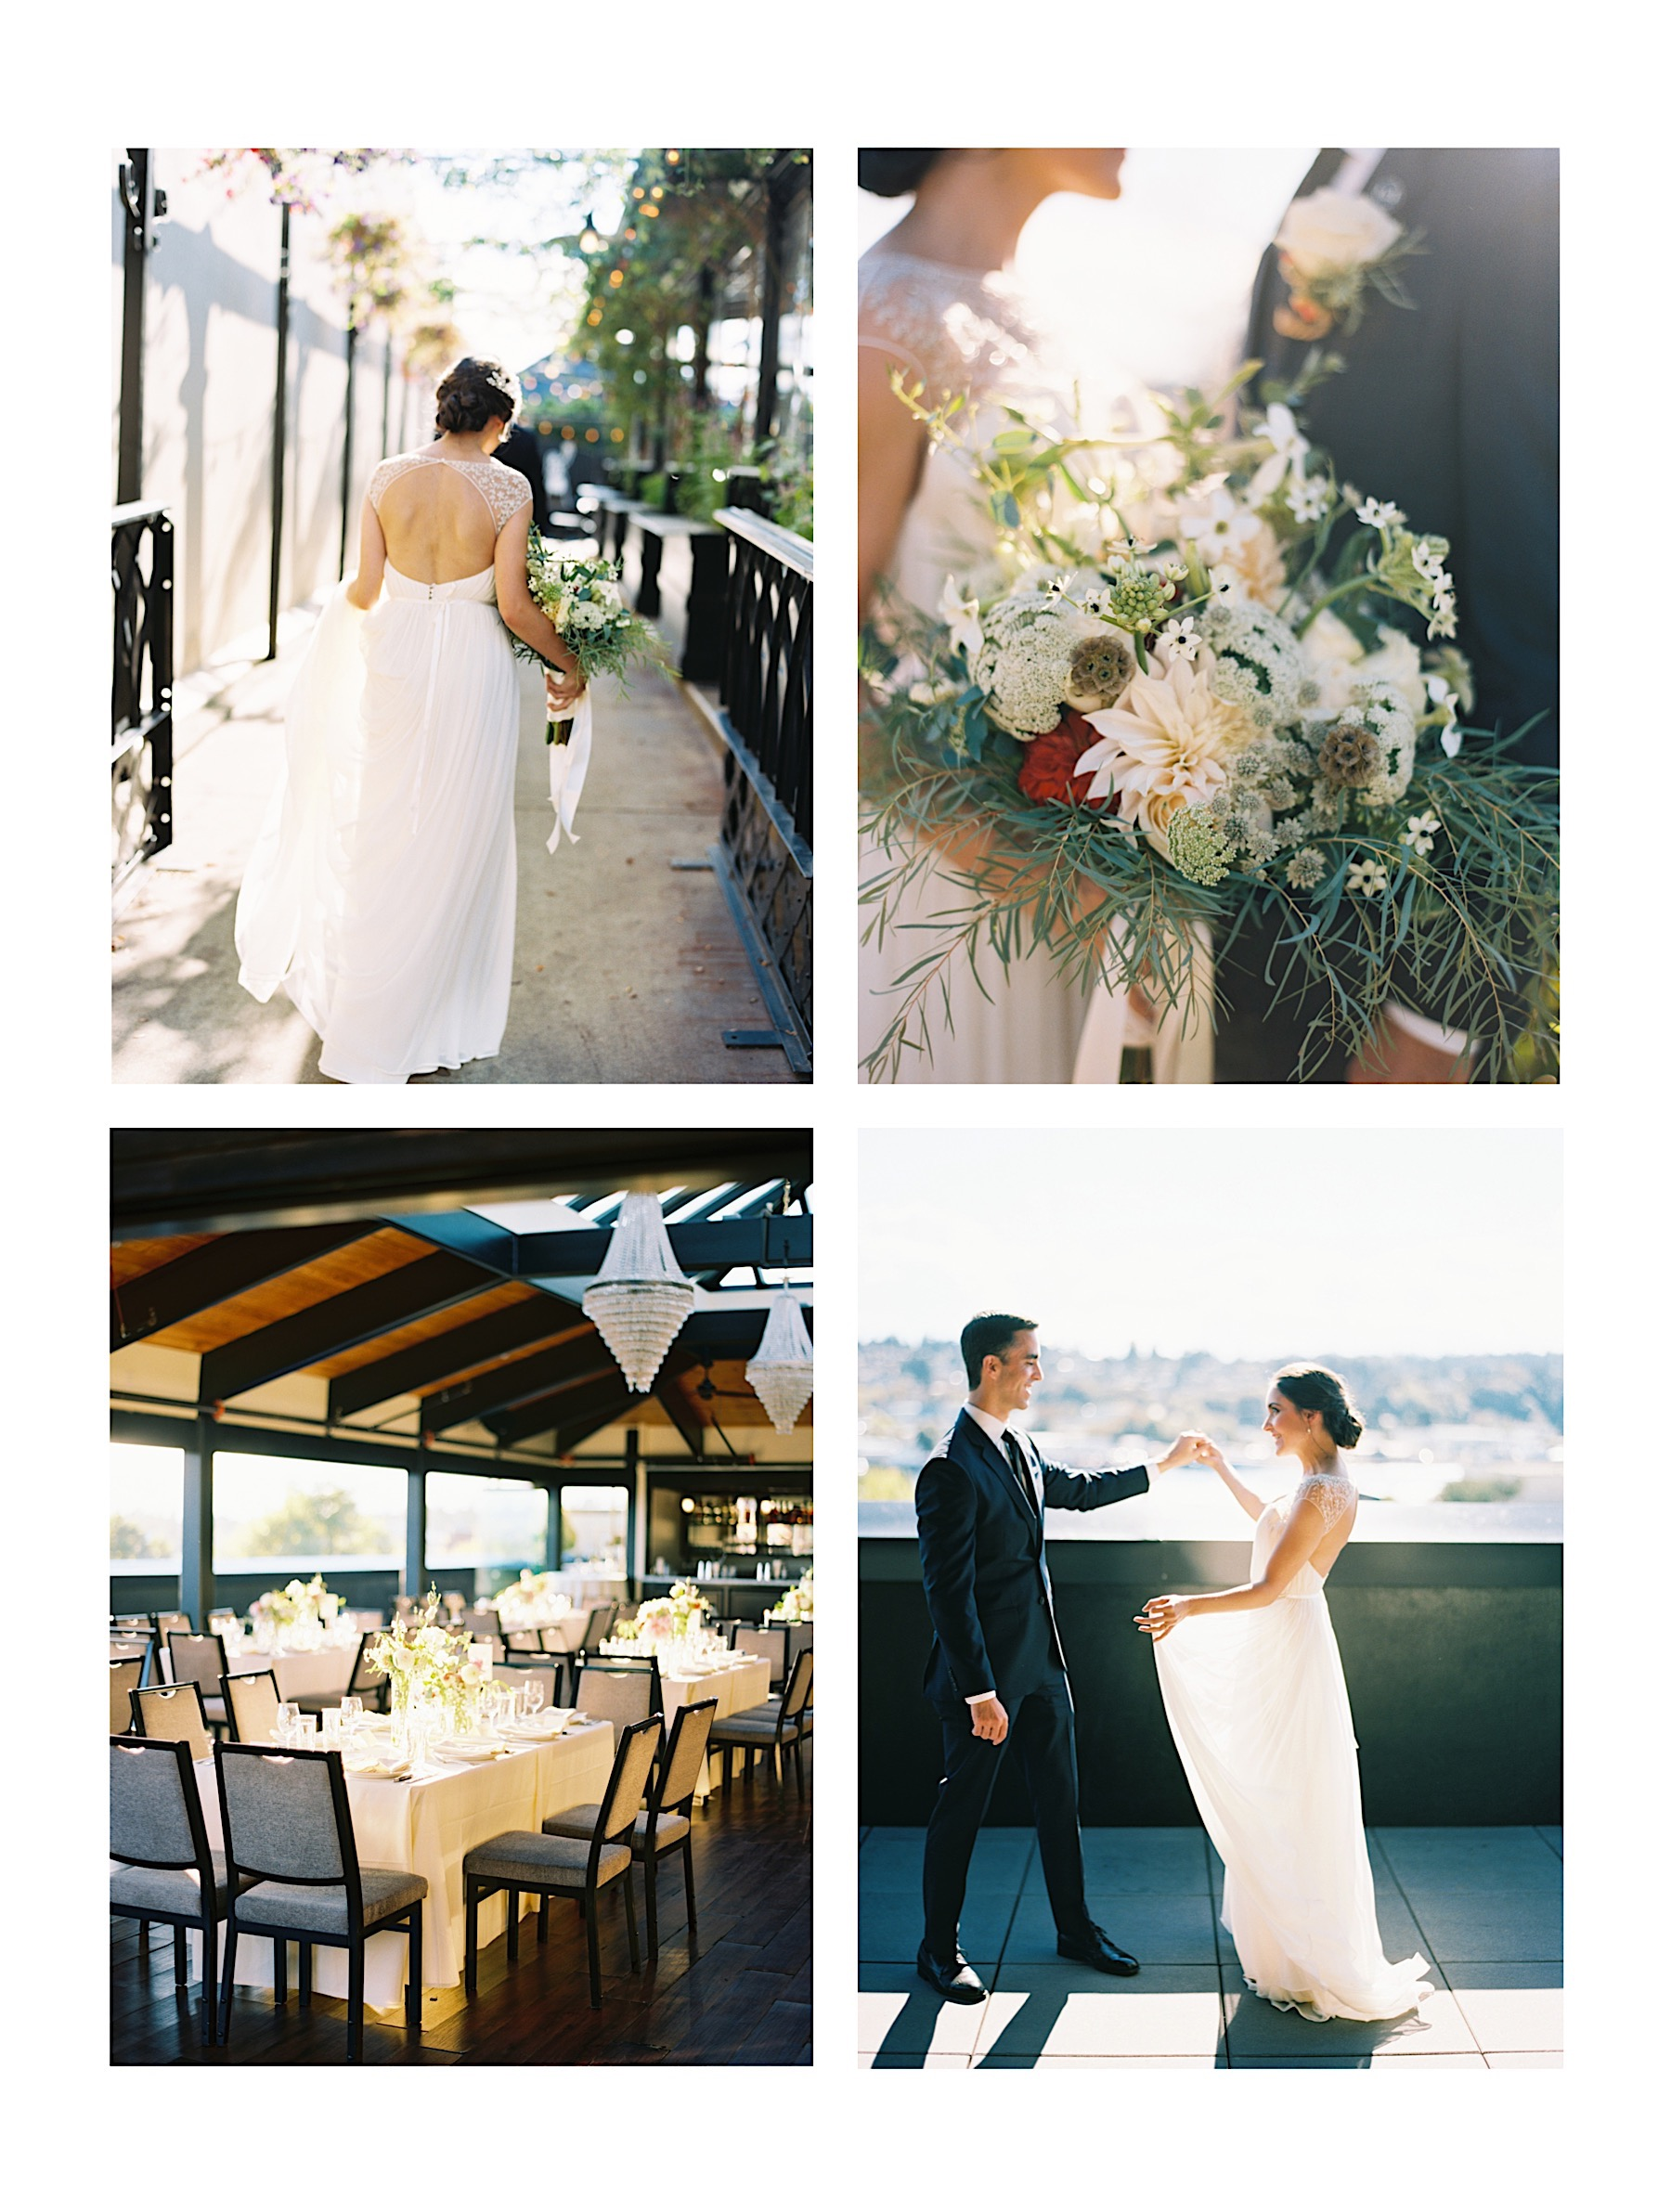 Our favorite elegant Seattle Wedding Venues, and a photographer's perspective on setting | Olympic Rooftop Pavillion - Intimate Rooftop Wedding Venue in Ballard